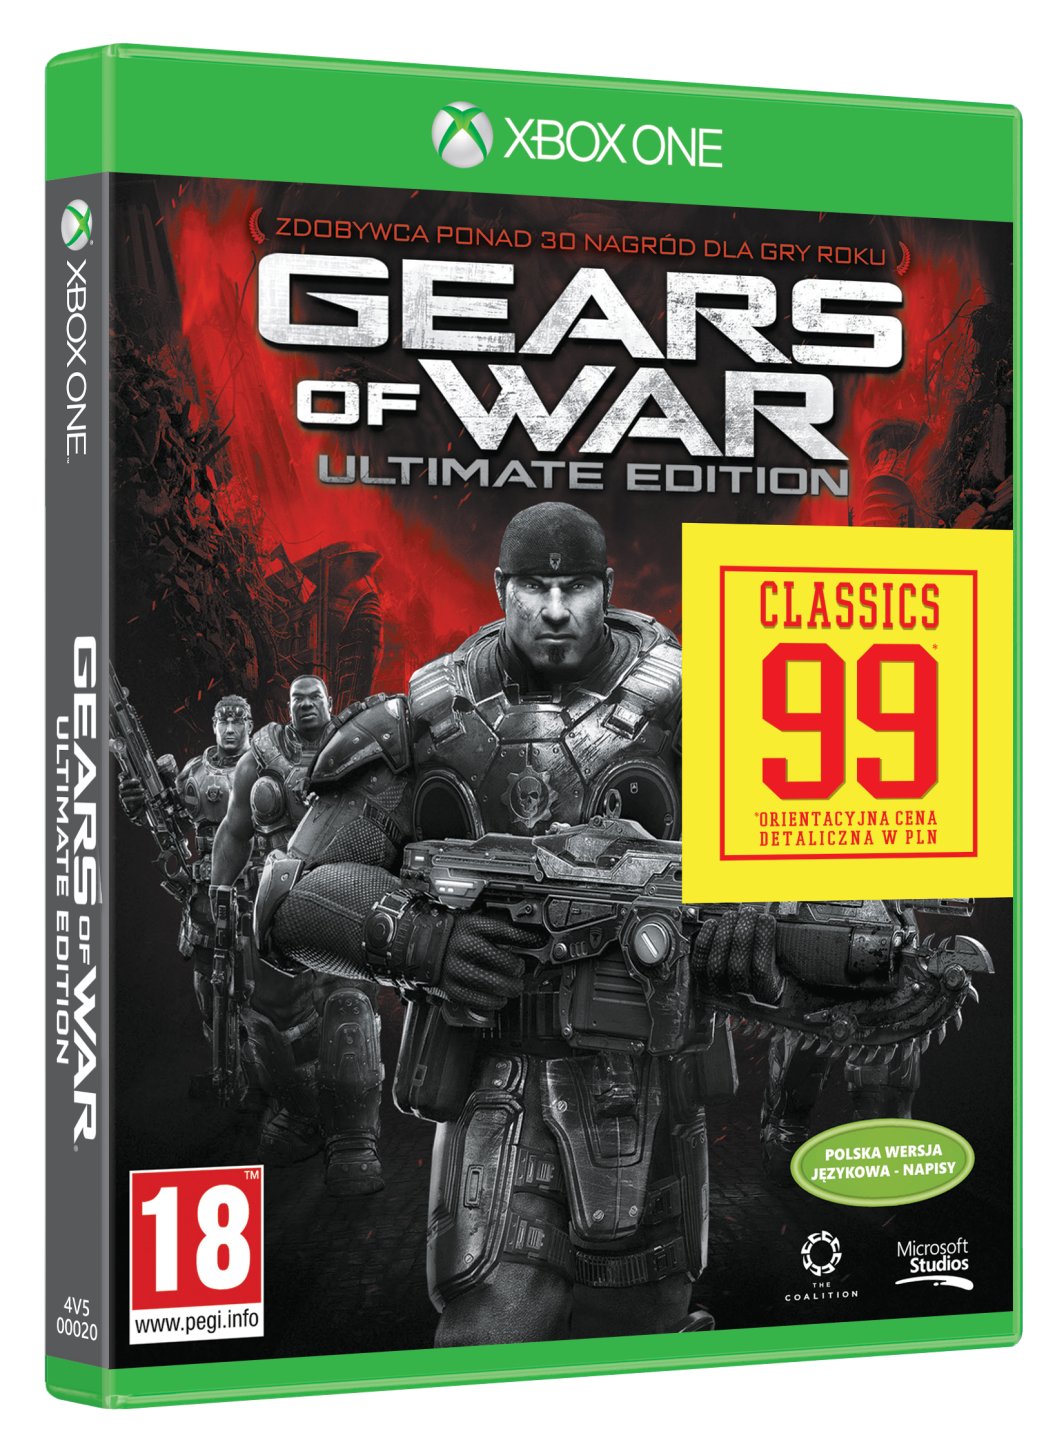 Gears of War Ultimate Edition (4V5-00020) Xbox One 1